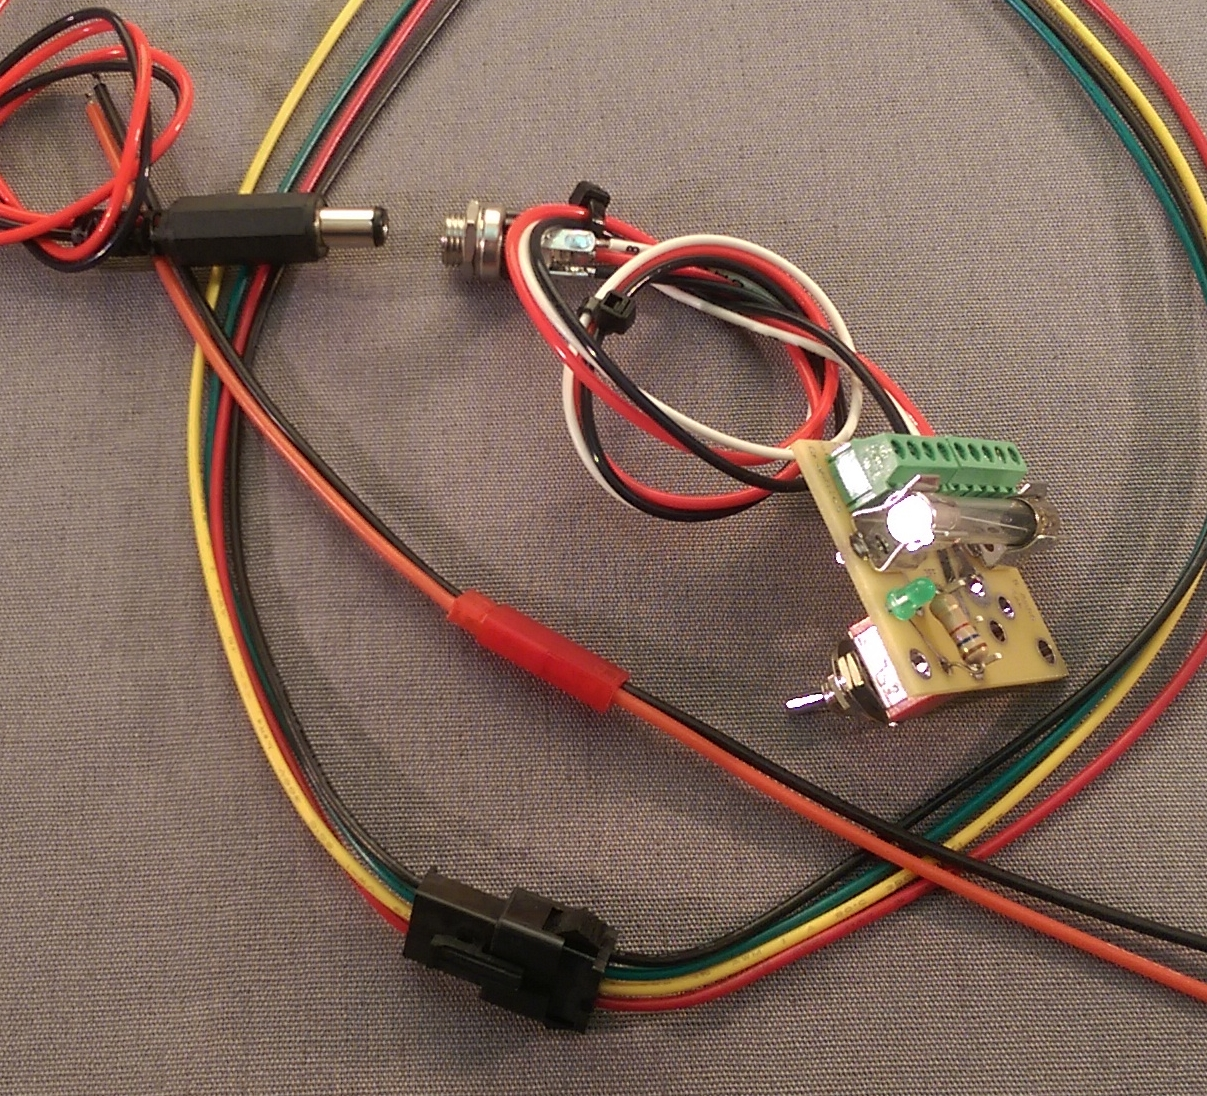 Sensational Bcm F Tender Charging Kit Wiring Cloud Oideiuggs Outletorg